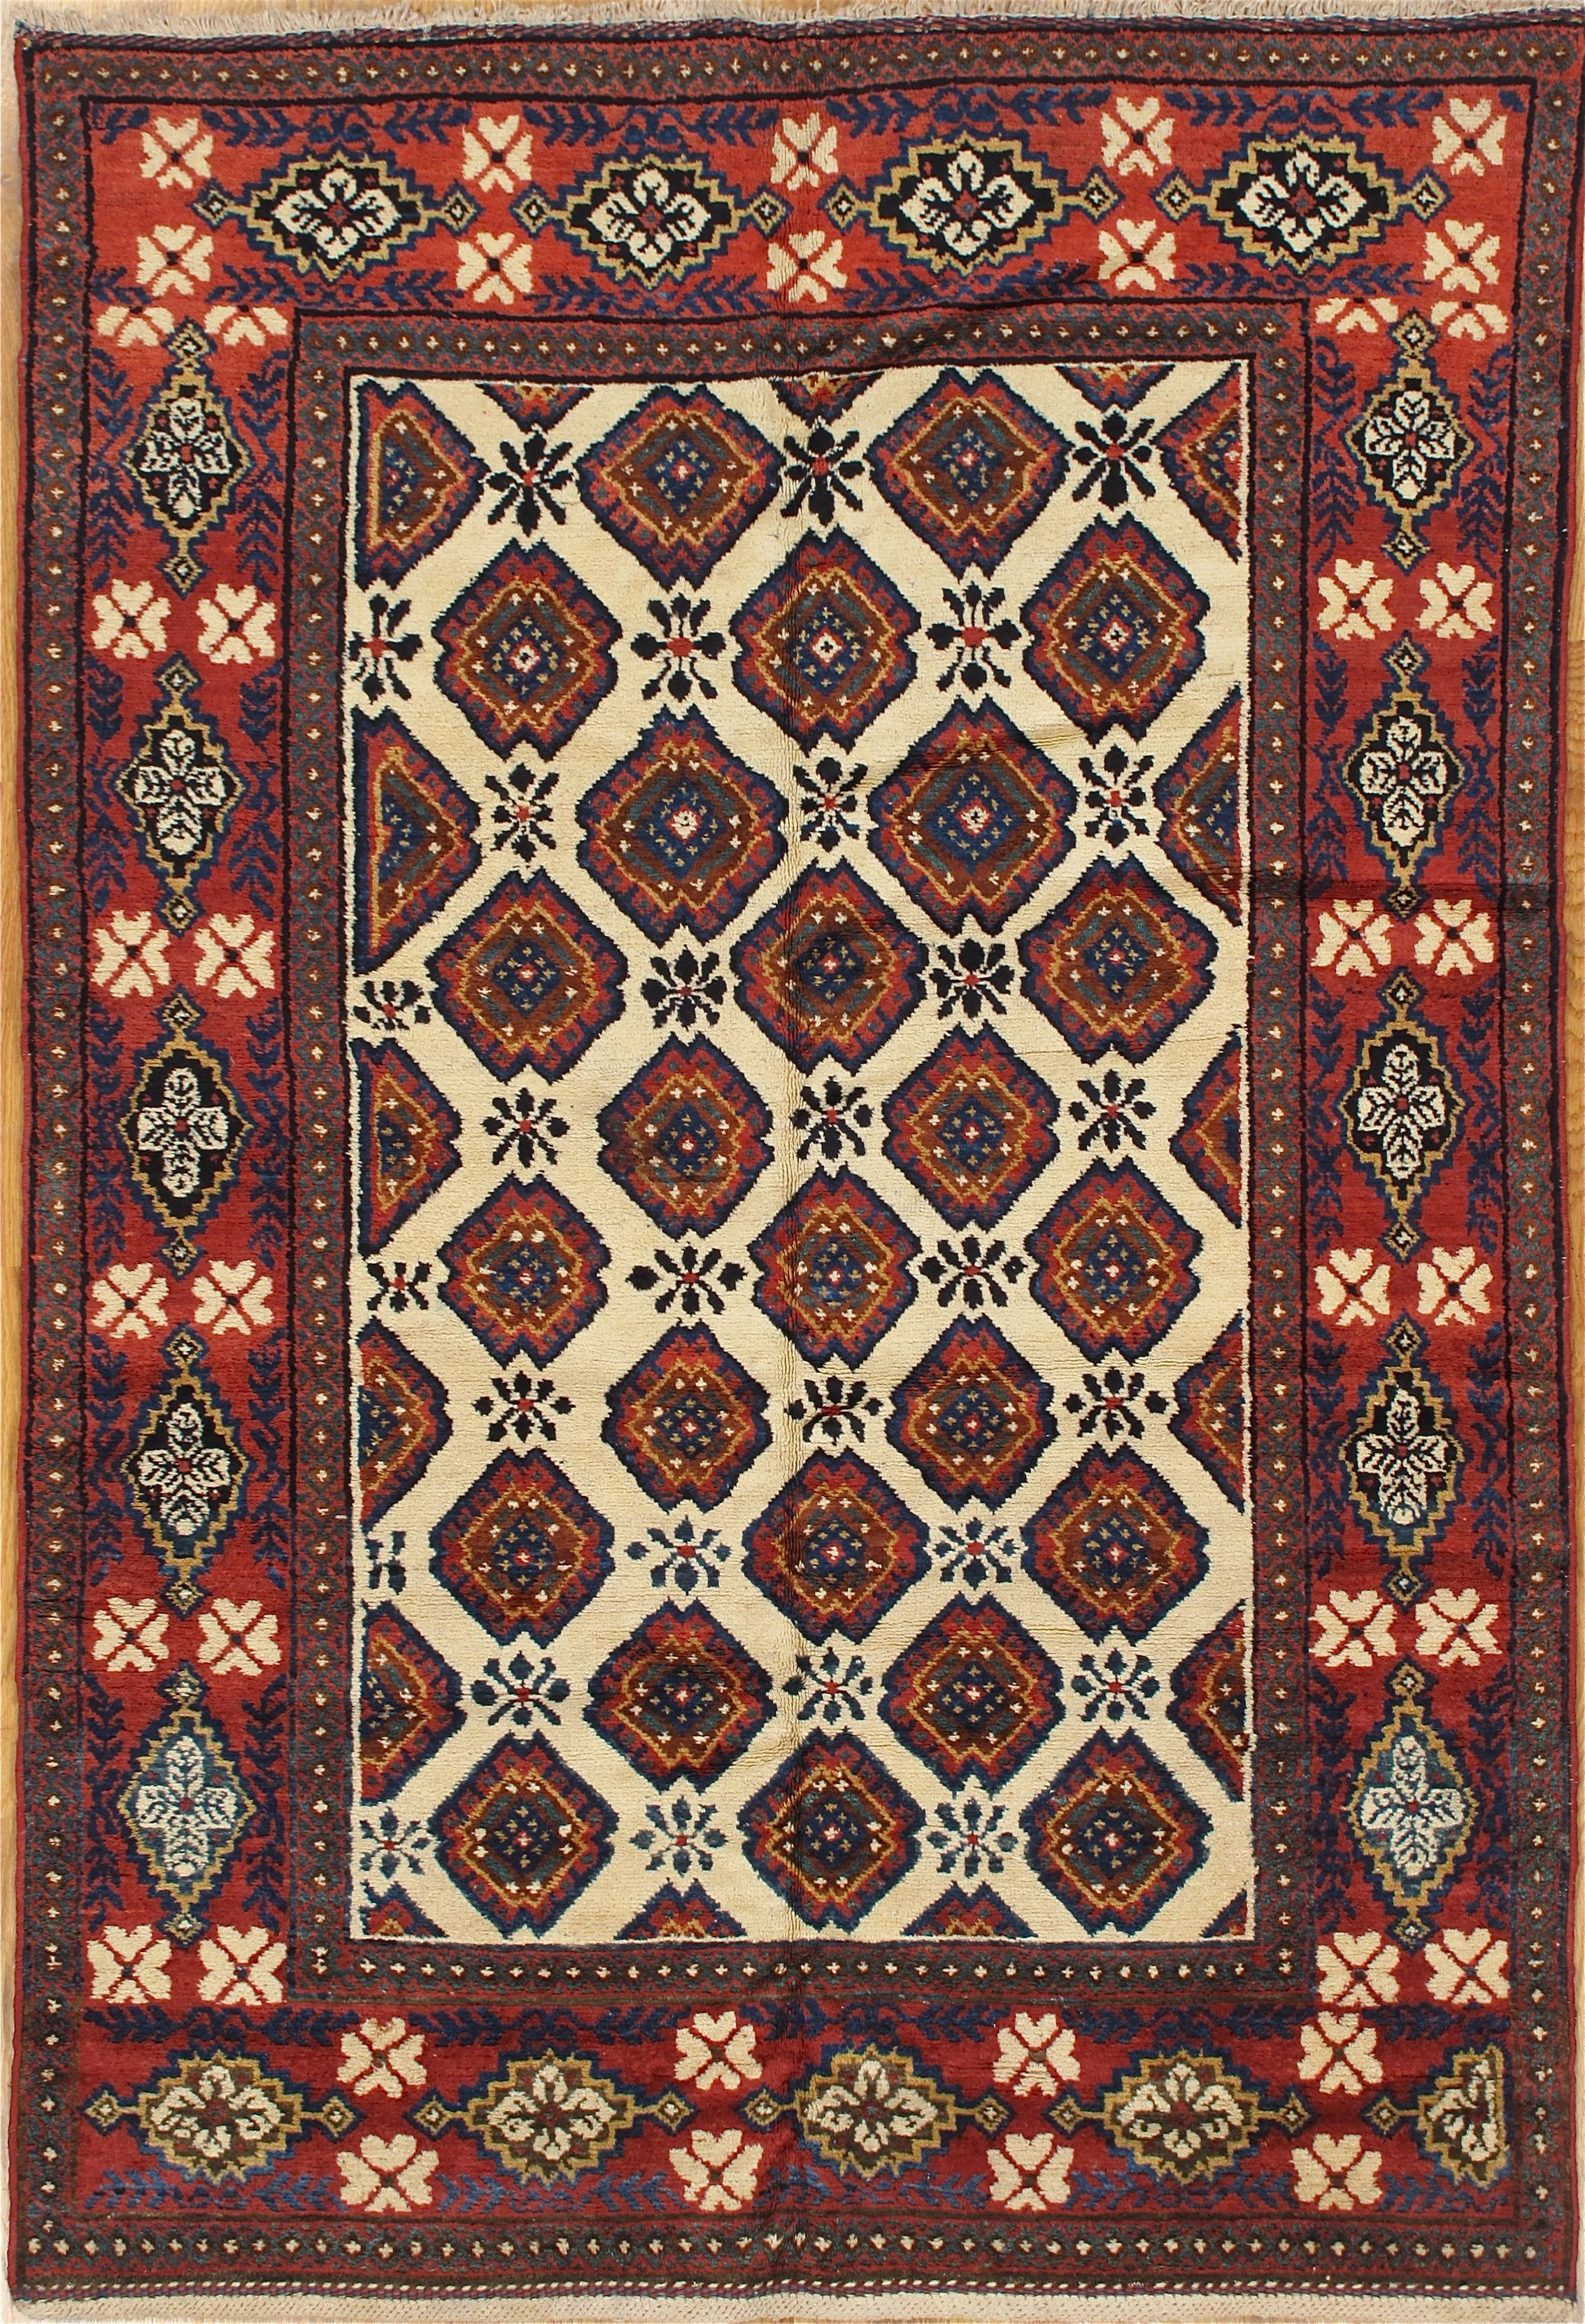 Afshar Rug From South East Iran Age Circa 1920 Size 5